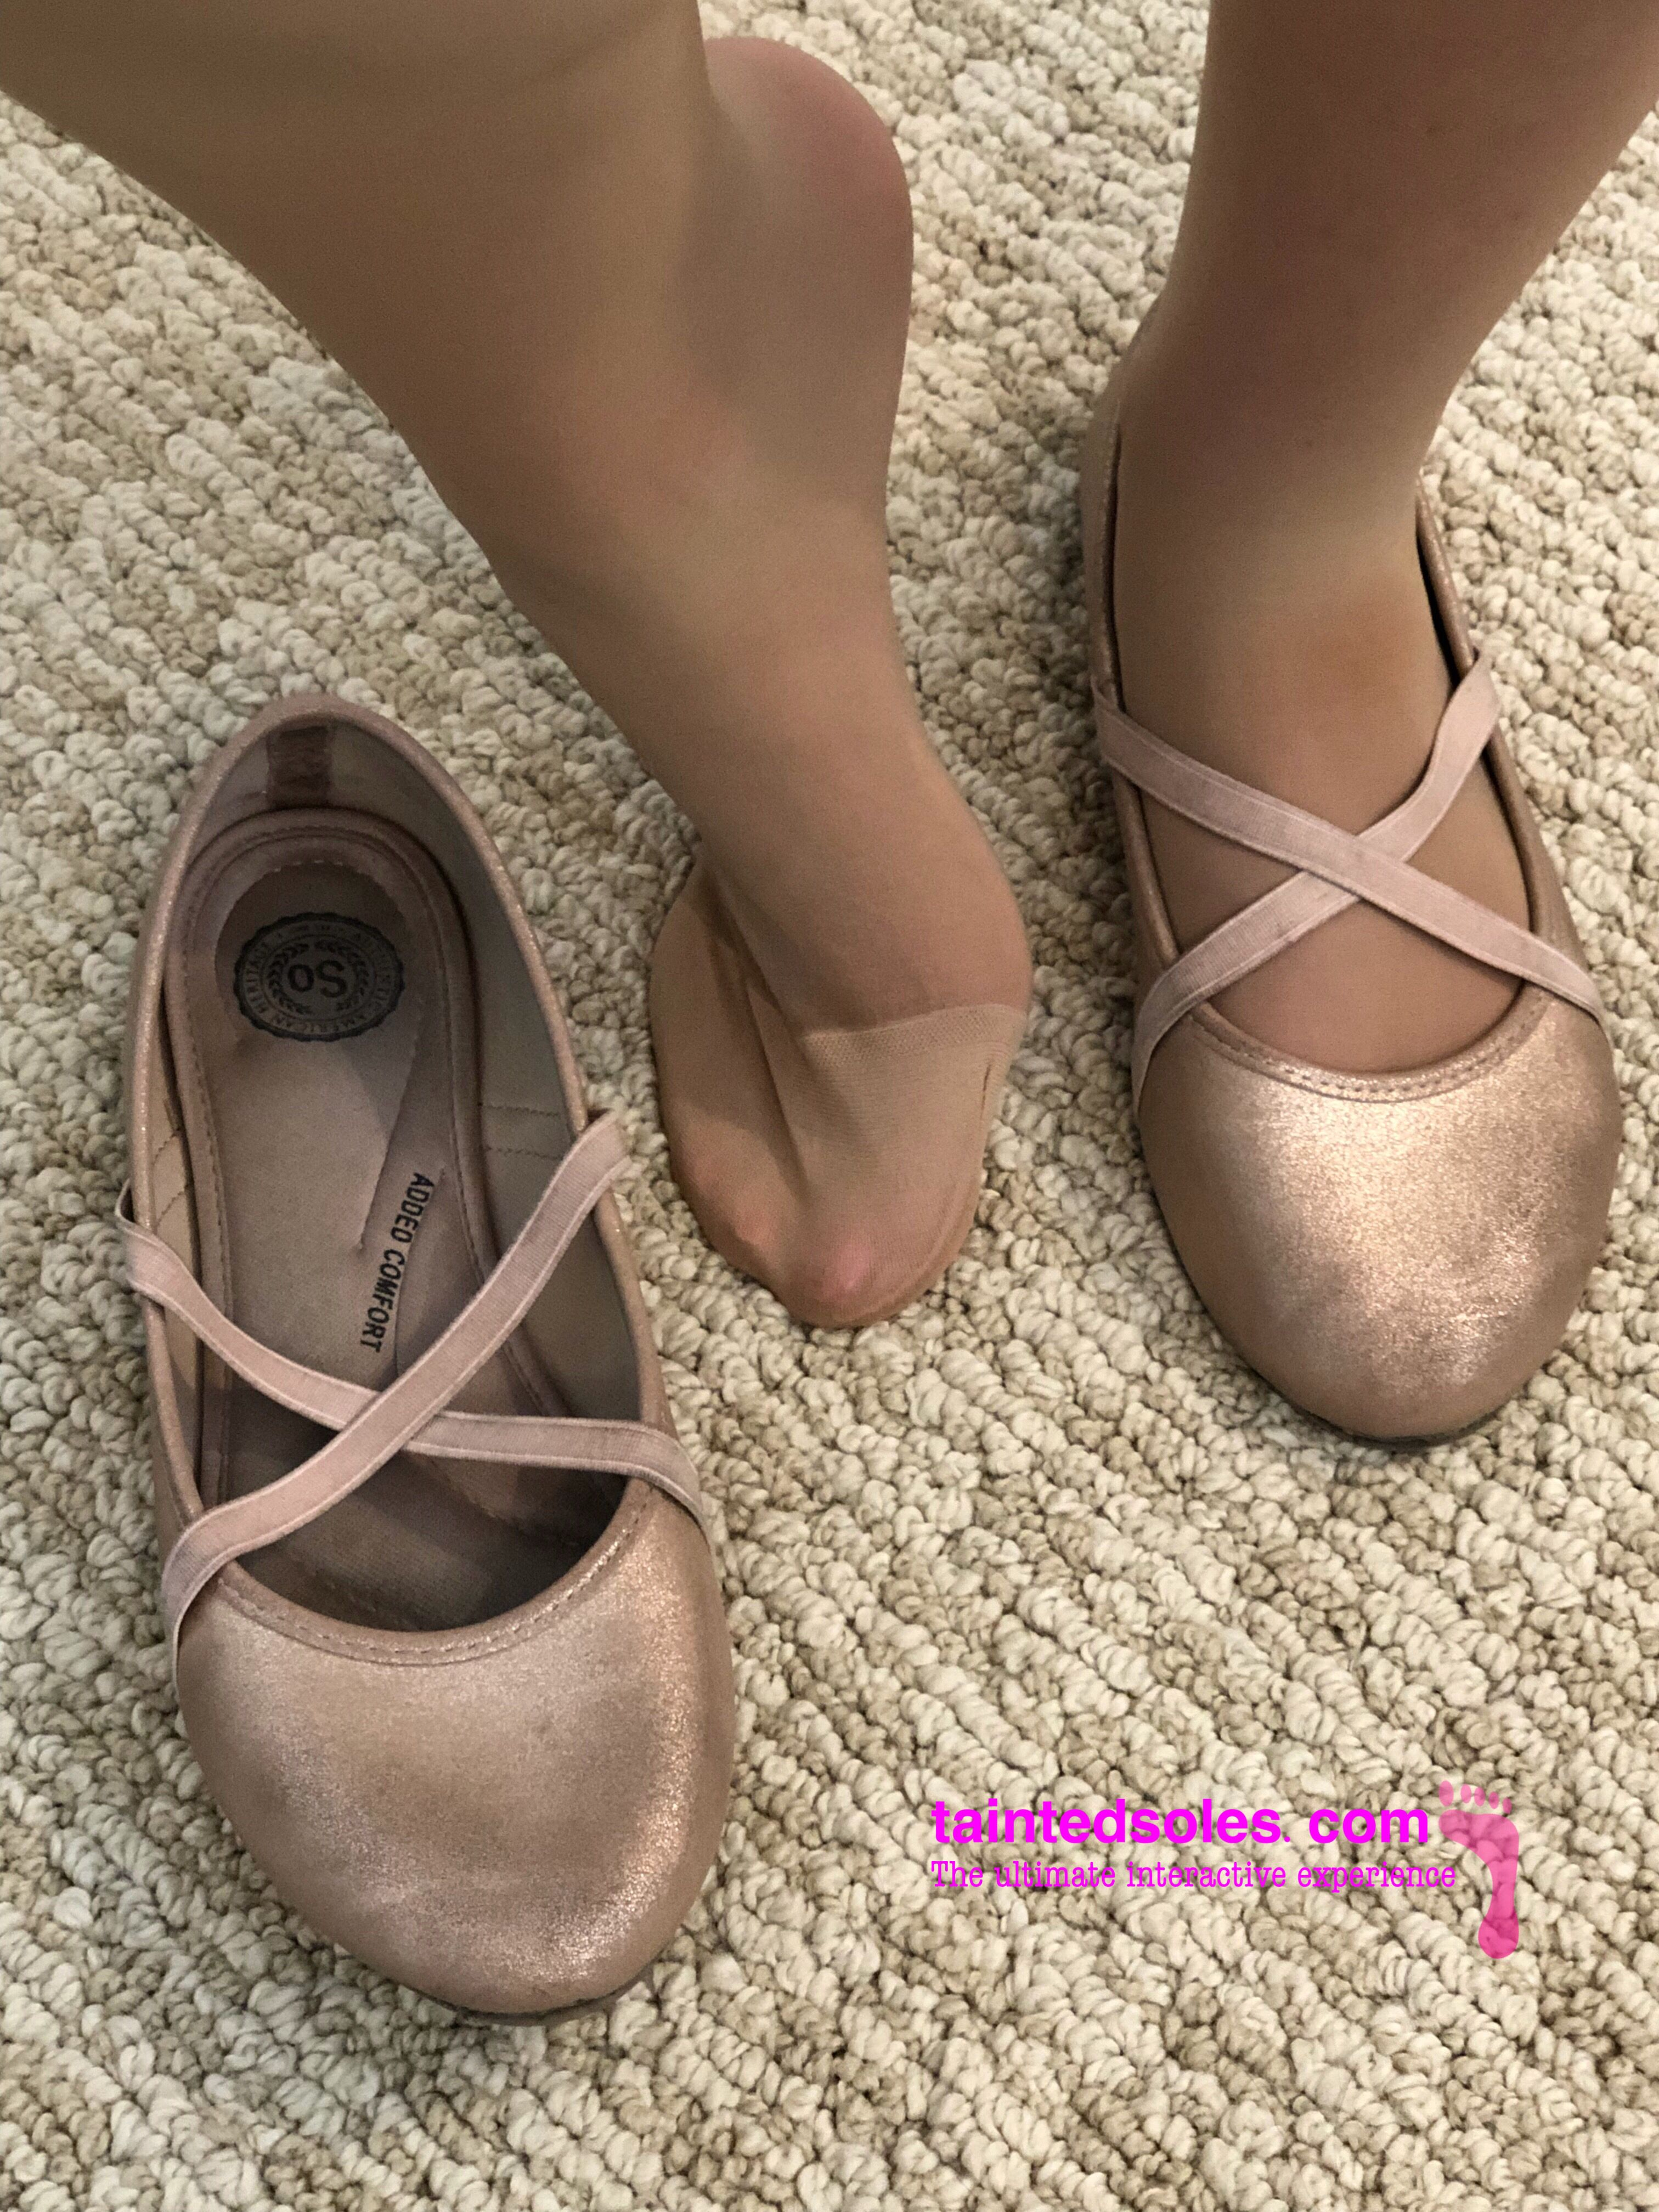 Pantyhose and pink flats abbymay1975 outlook Flat Hose 87976fb39